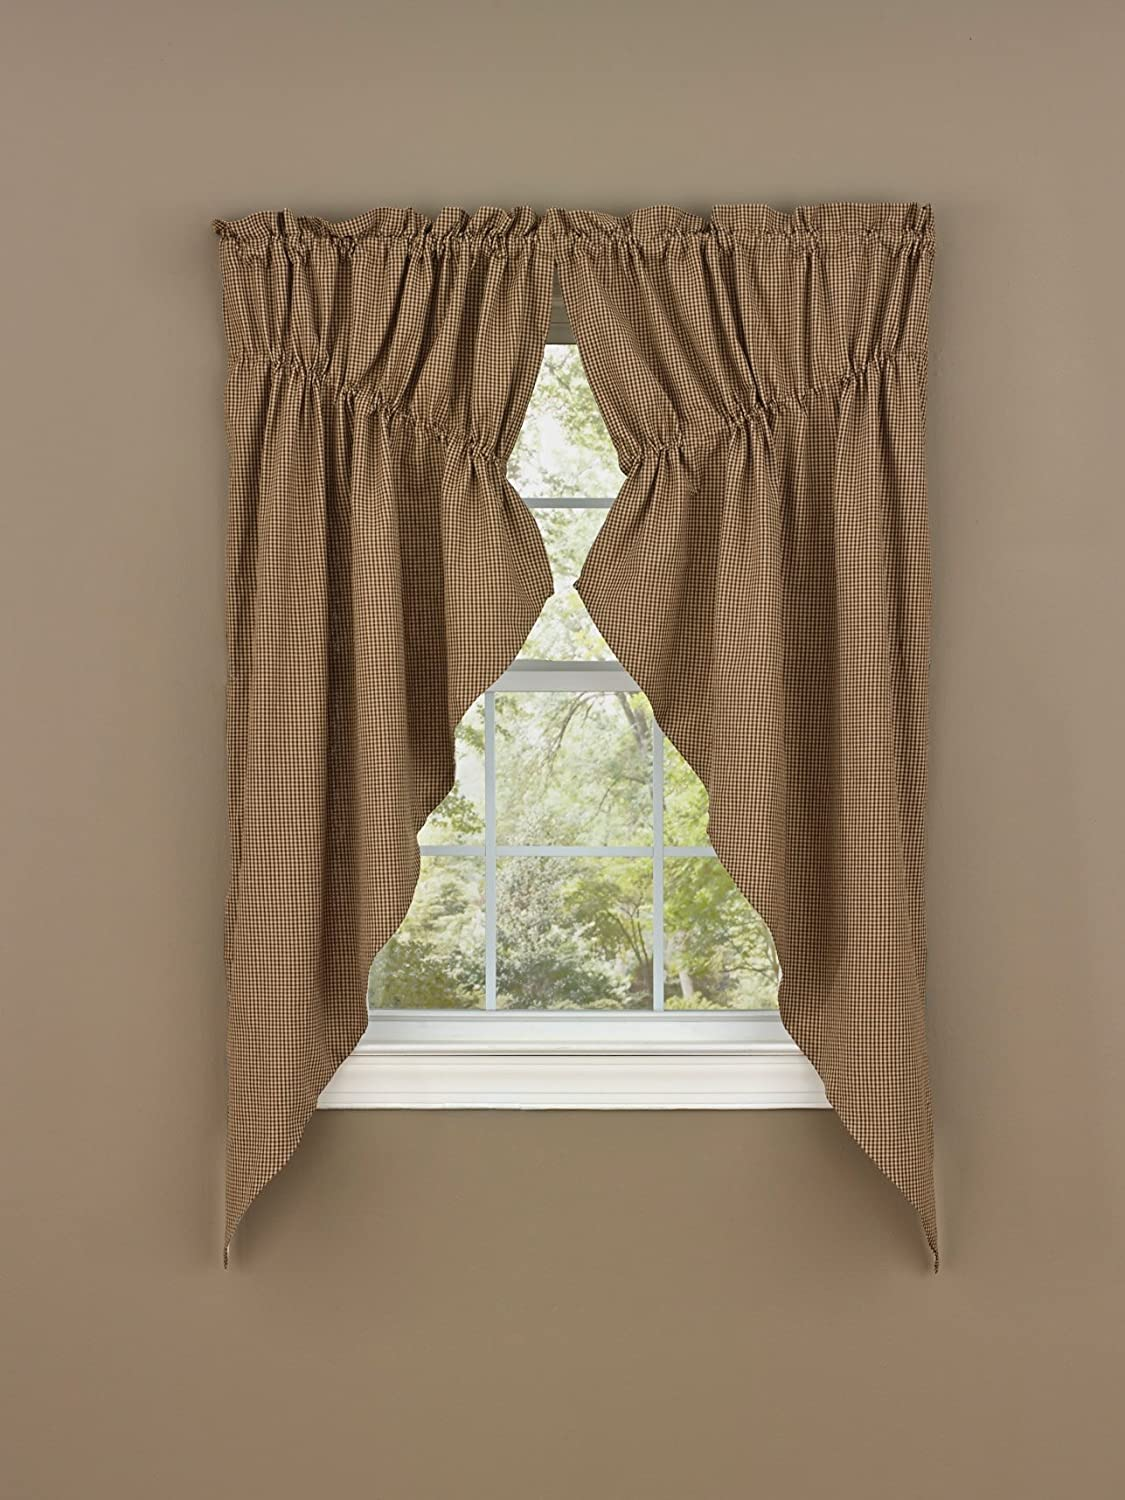 Park Designs Shade of Brown Lined Gathered Swag, 72 x 63